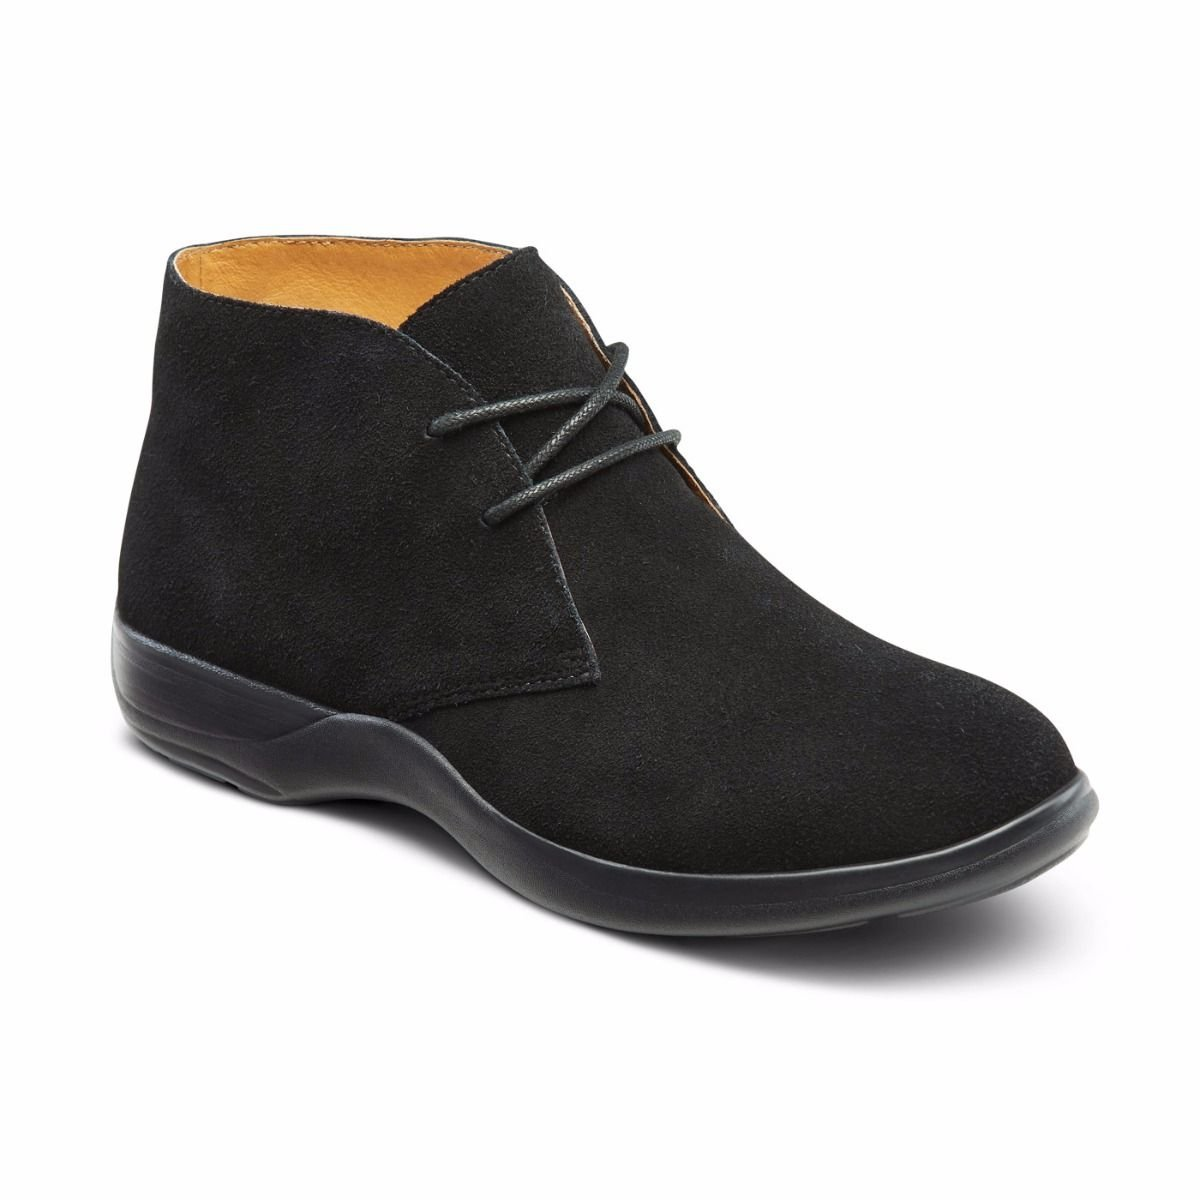 Dr. Comfort Women's Cara Casual Suede Leather Bootie Chukka Boot Black B074ZPFL2J 9 B(M) US|Black